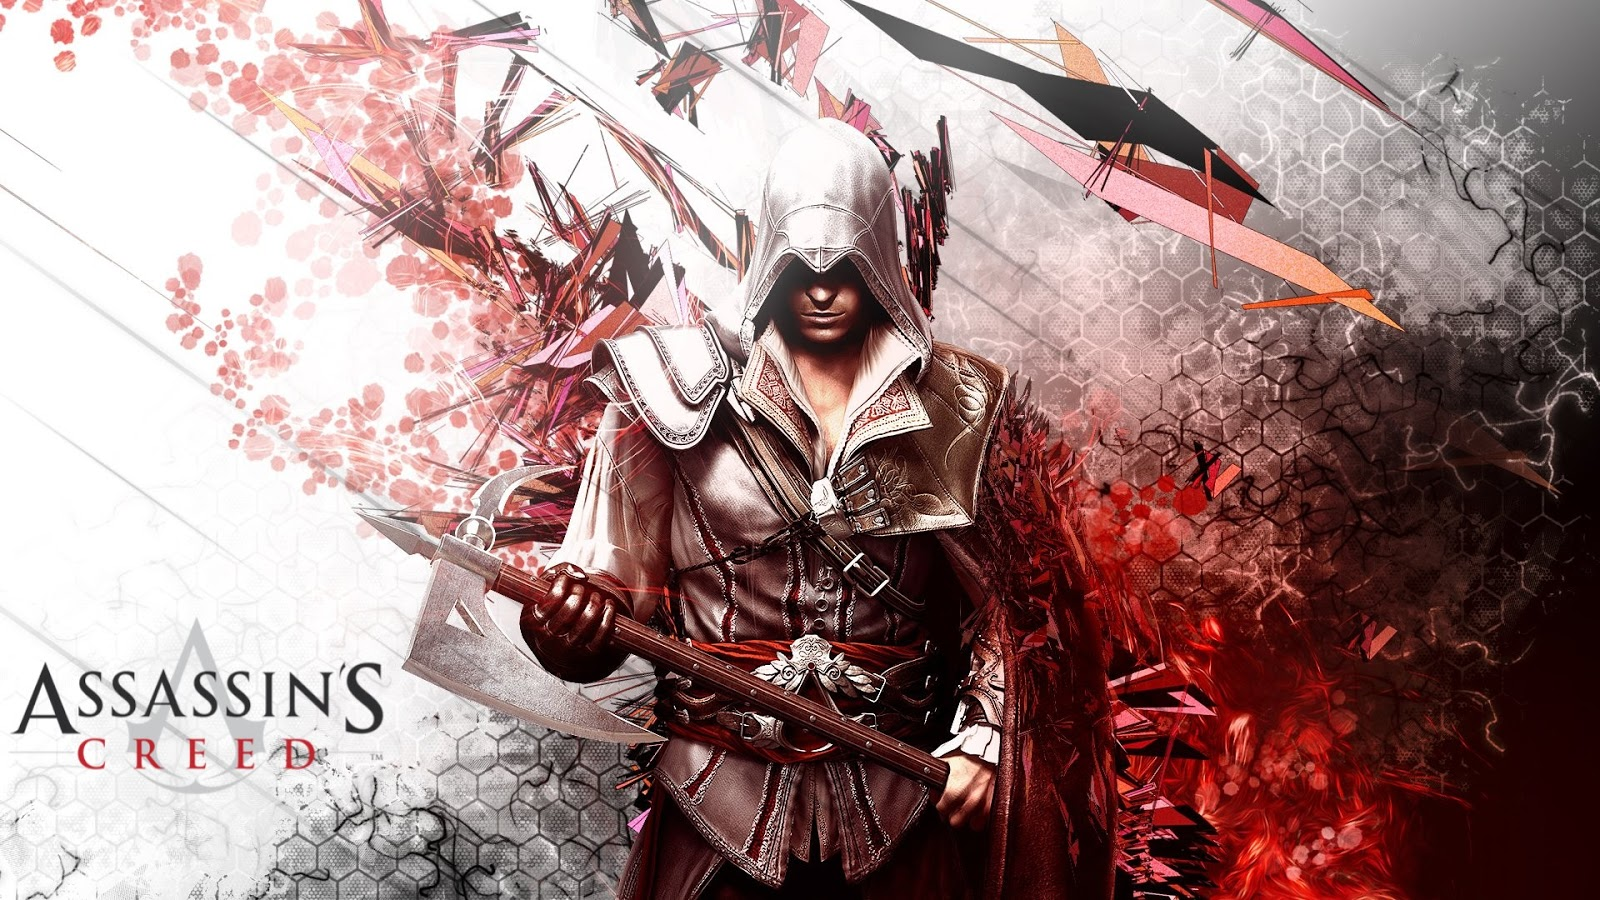 500 Mb Download Assassin S Creed Bloodlines Ppsspp Assassin S